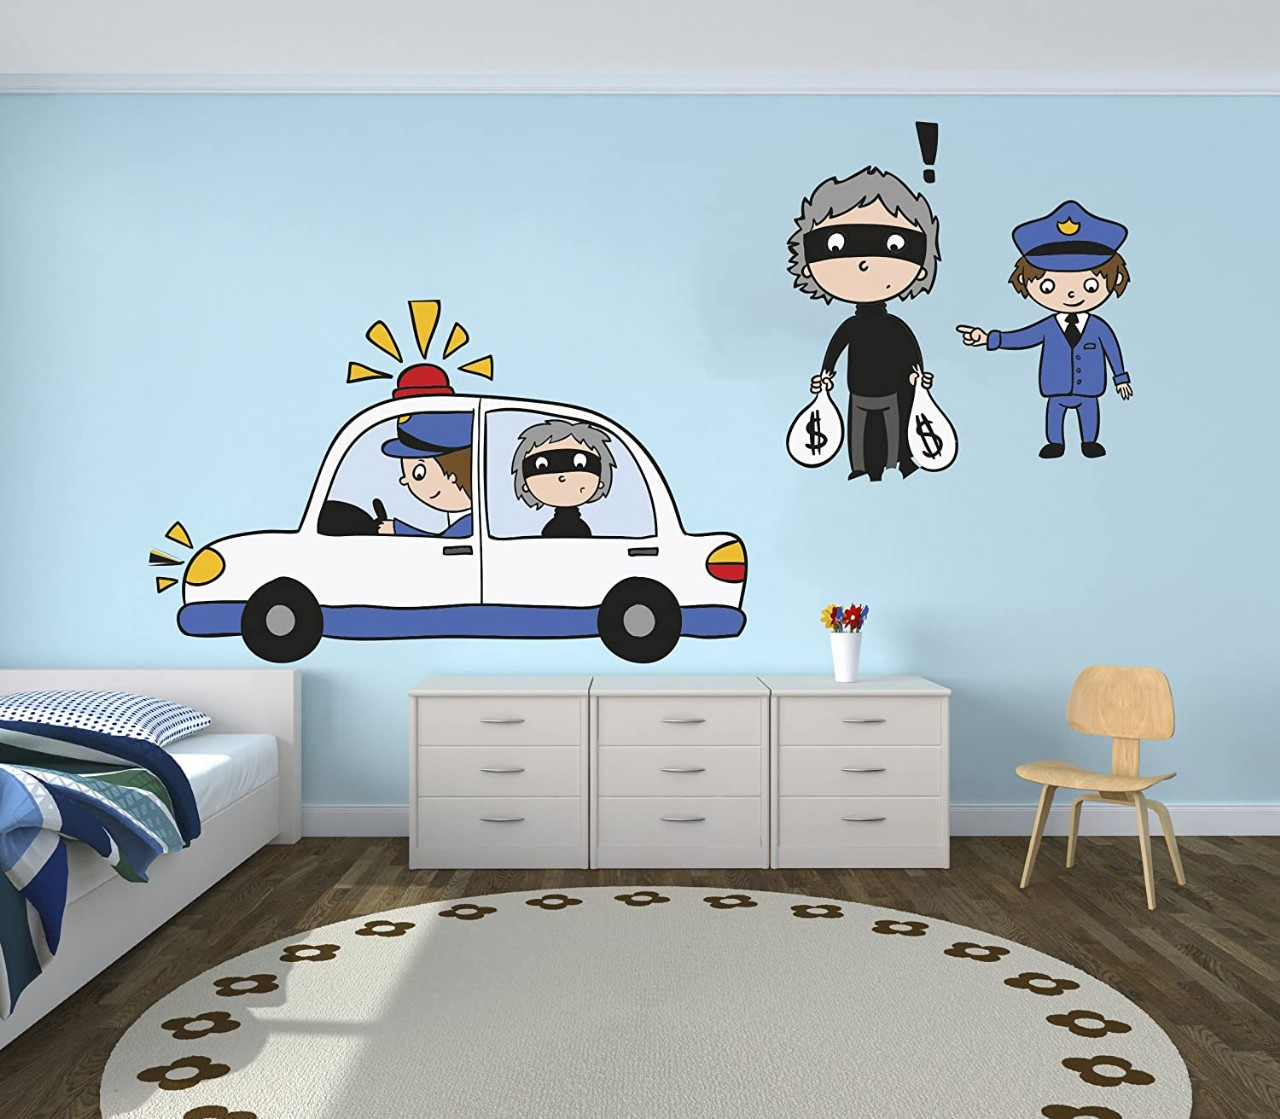 e-Graphic Design Inc Police and Thief Vinyl Wall Paper Decal Art Sticker - Kids Room Decor for Home